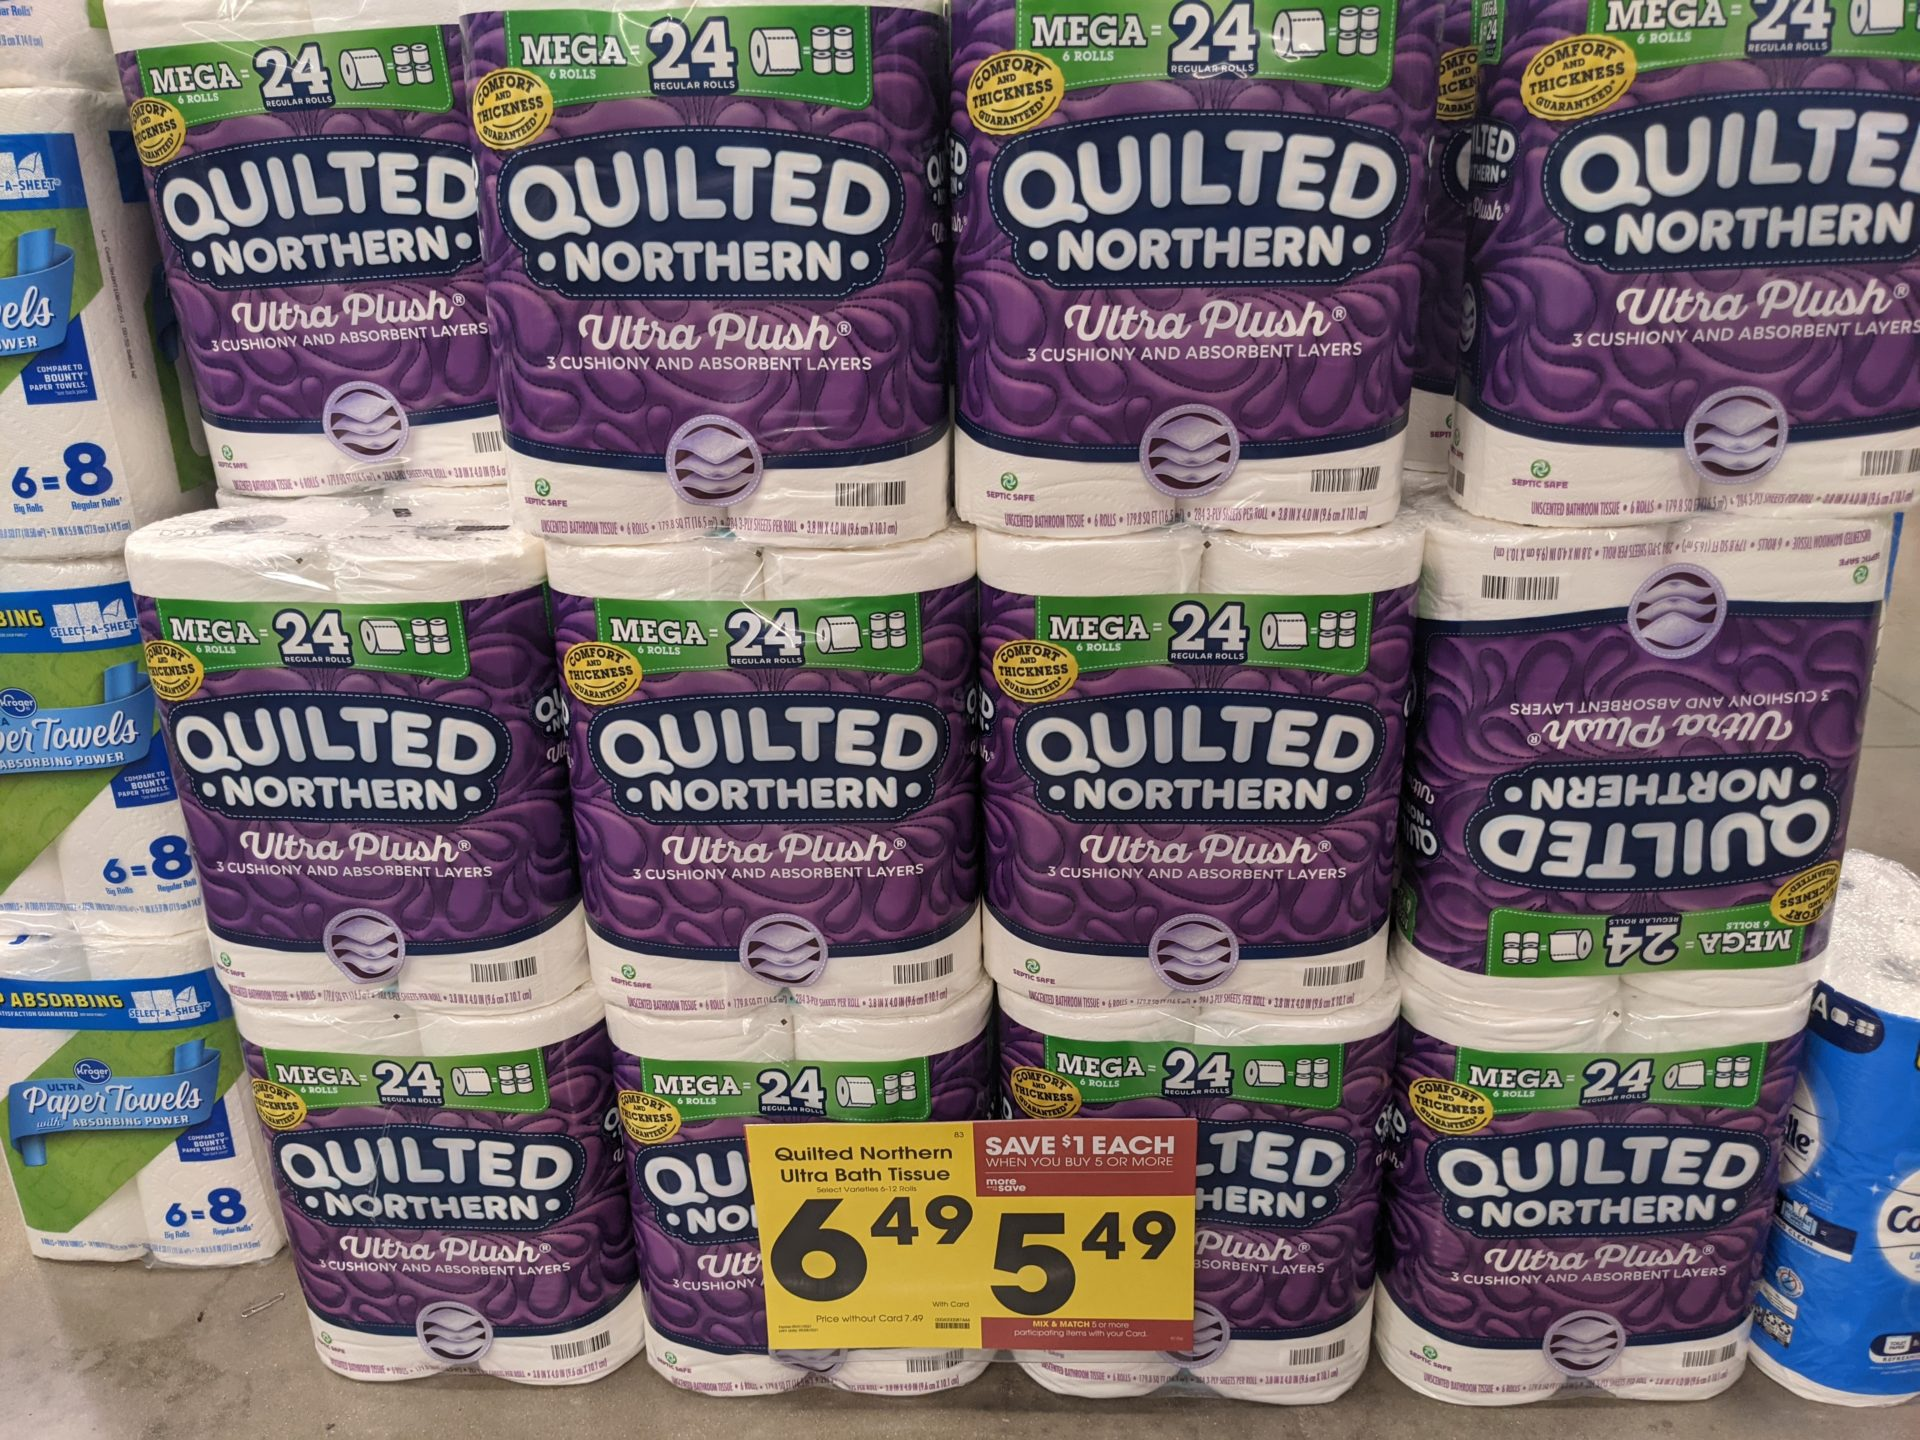 Quilted Northern Bath Tissue As Low As $4.49 At Kroger